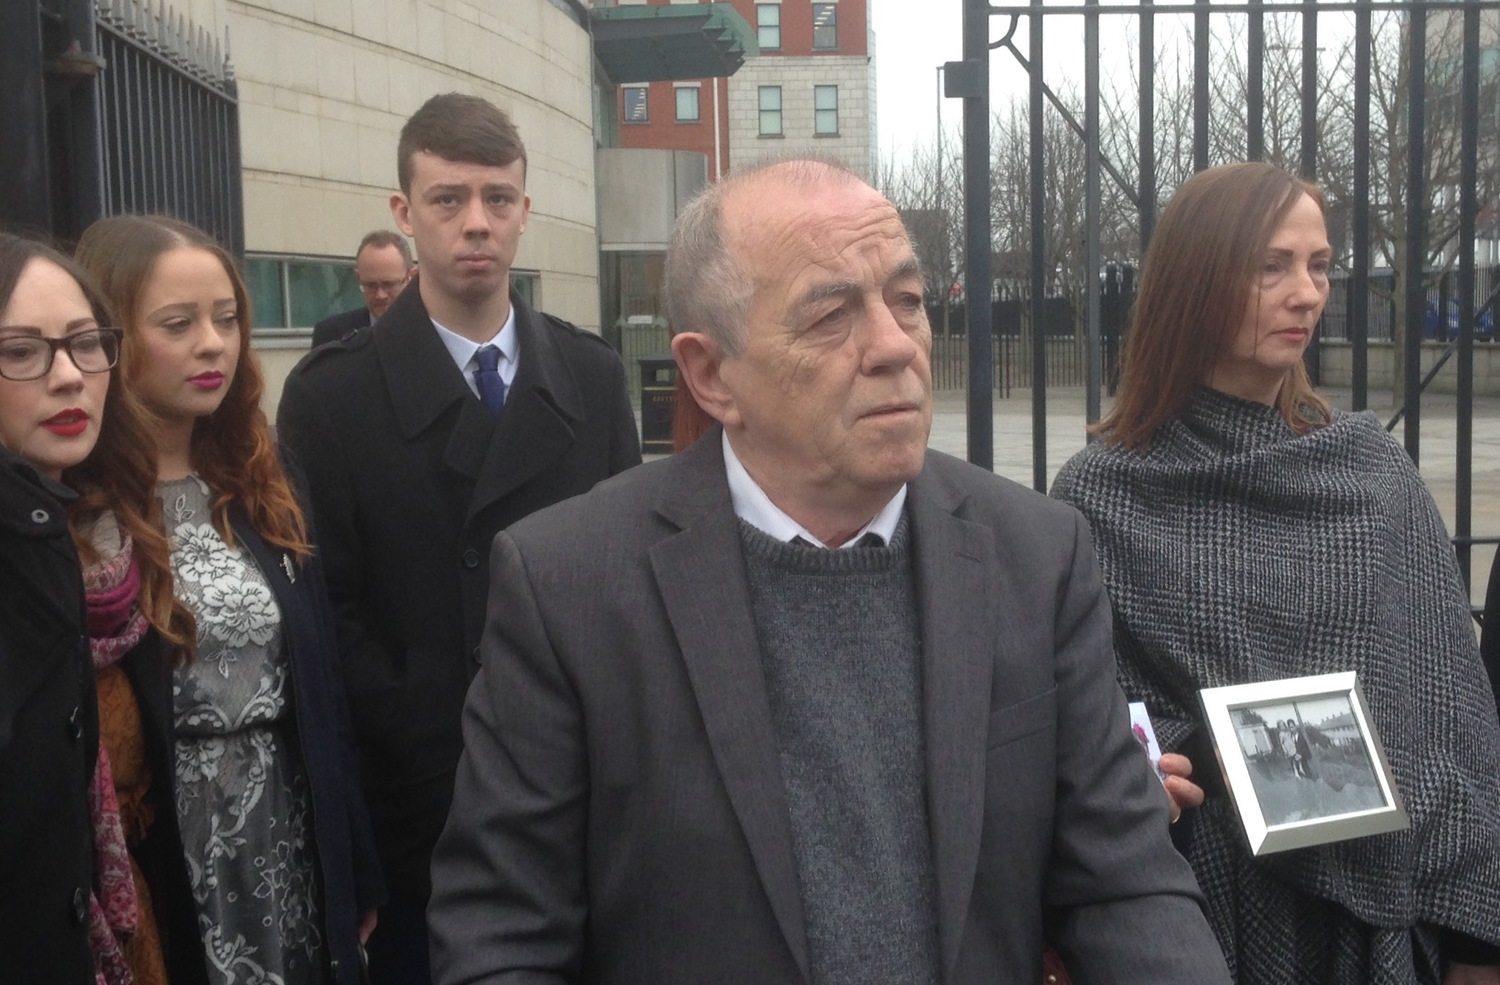 Terry Laverty, centre, who had his riot conviction overturned